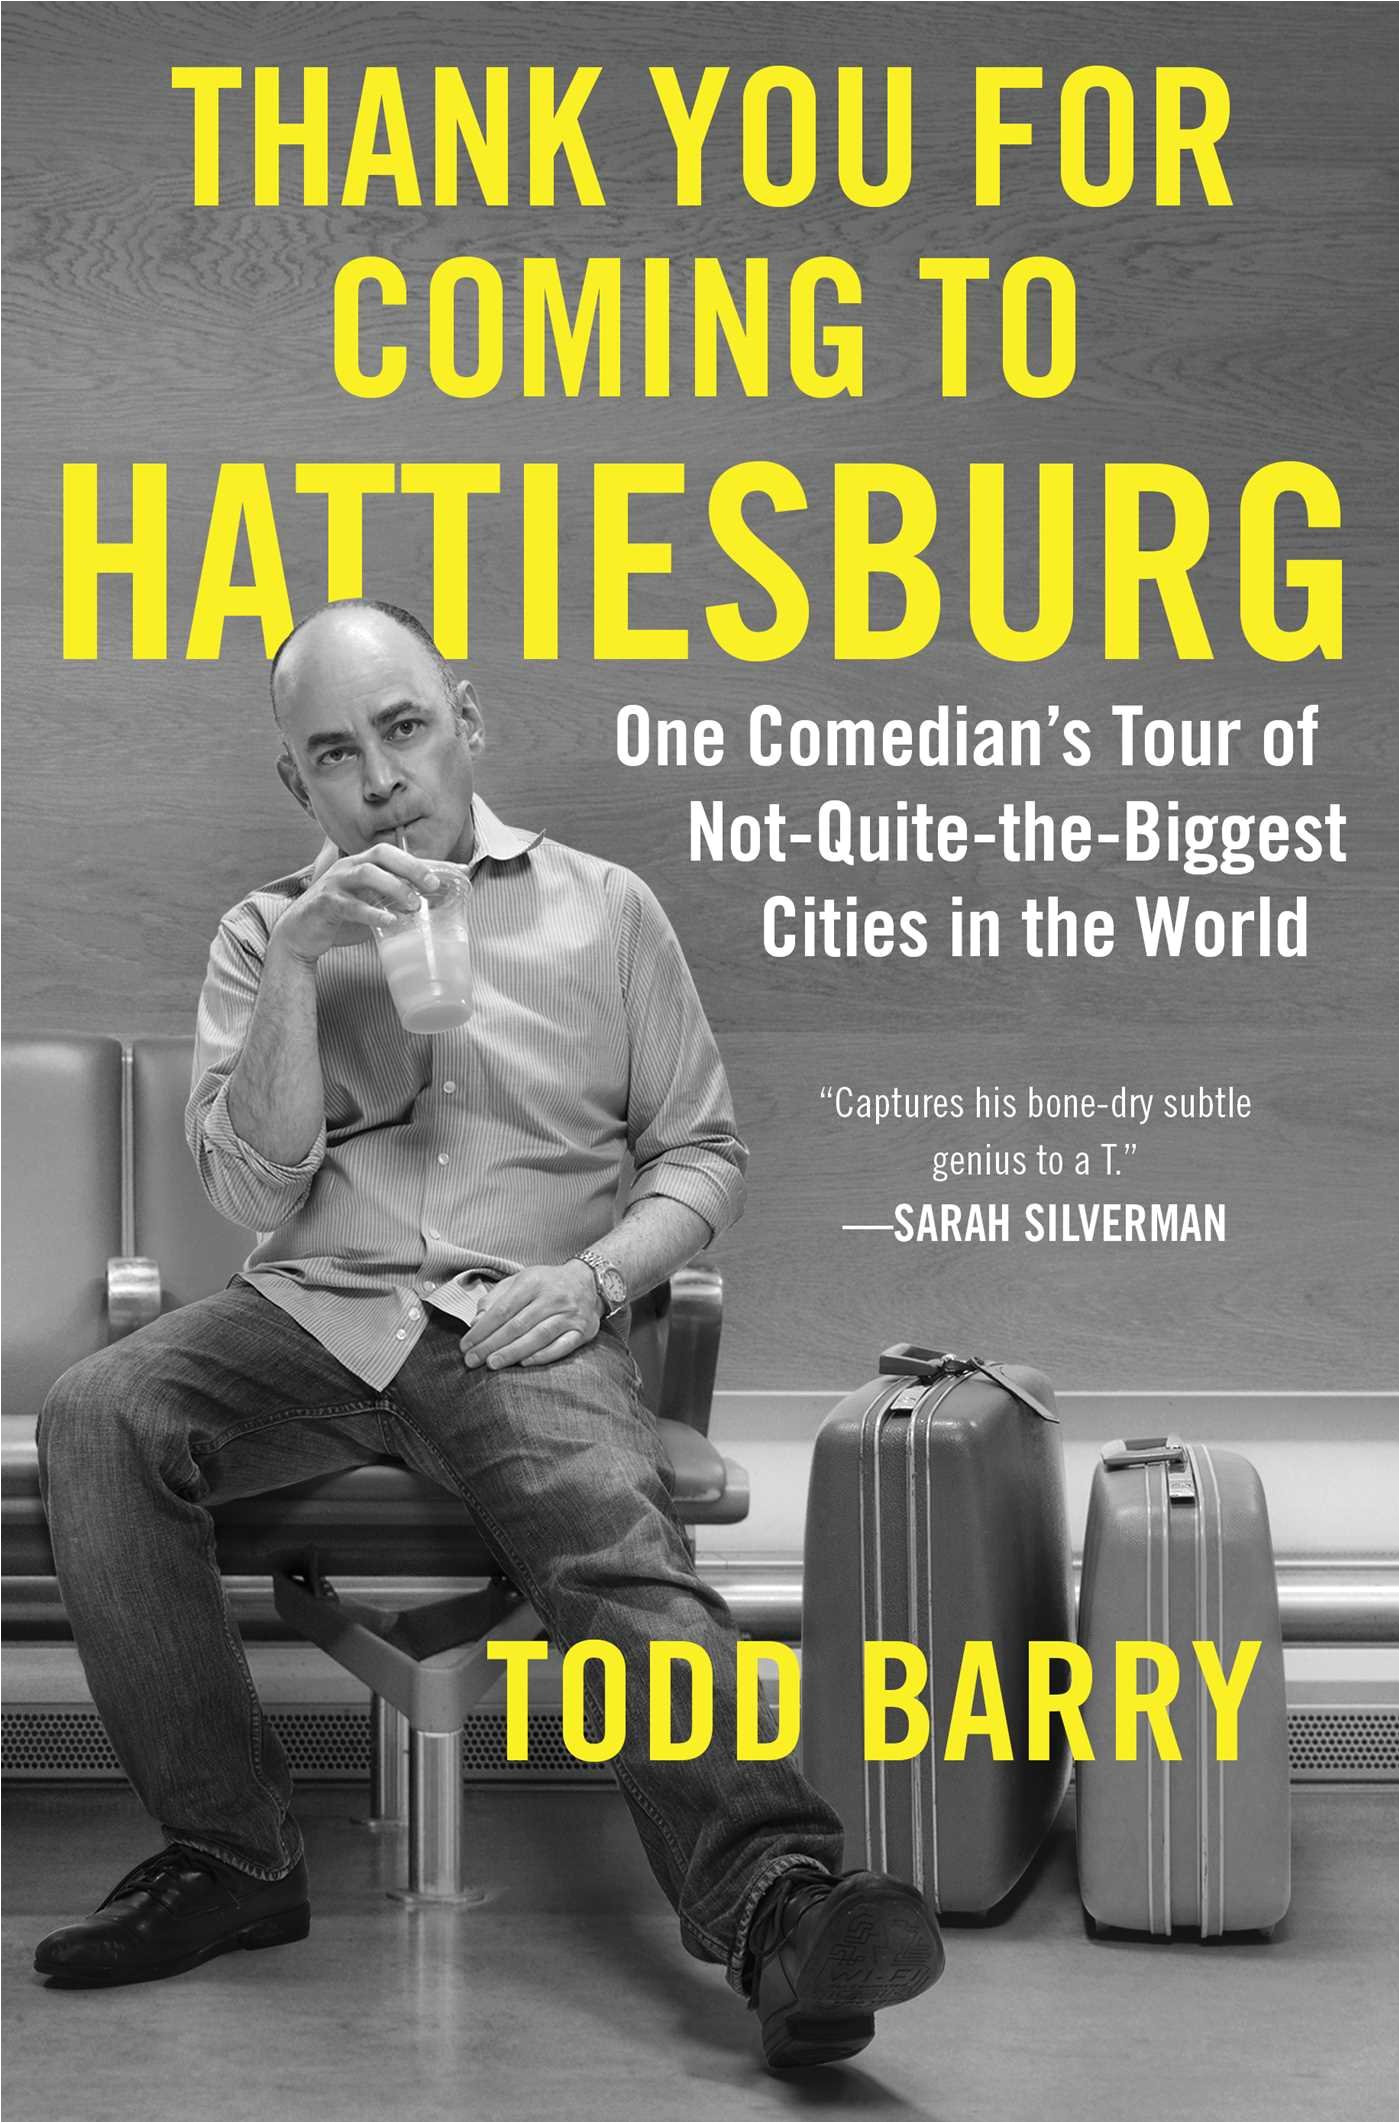 thank you for coming to hattiesburg one comedian s tour of not quite the biggest cities in the world todd barry 9781501117428 amazon com books